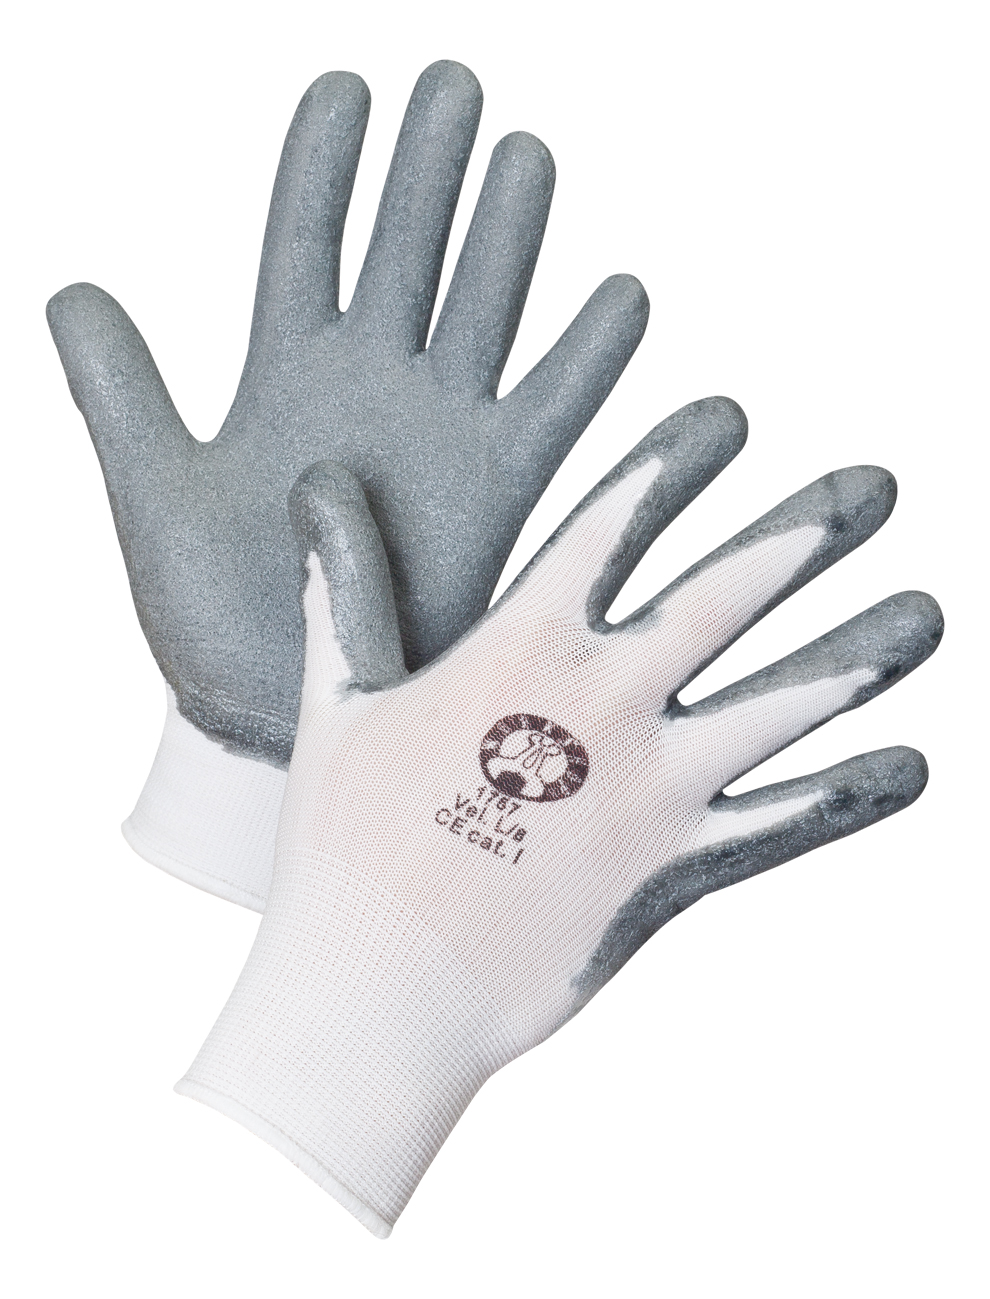 AERO Gloves NitroFoam Optimal 1757